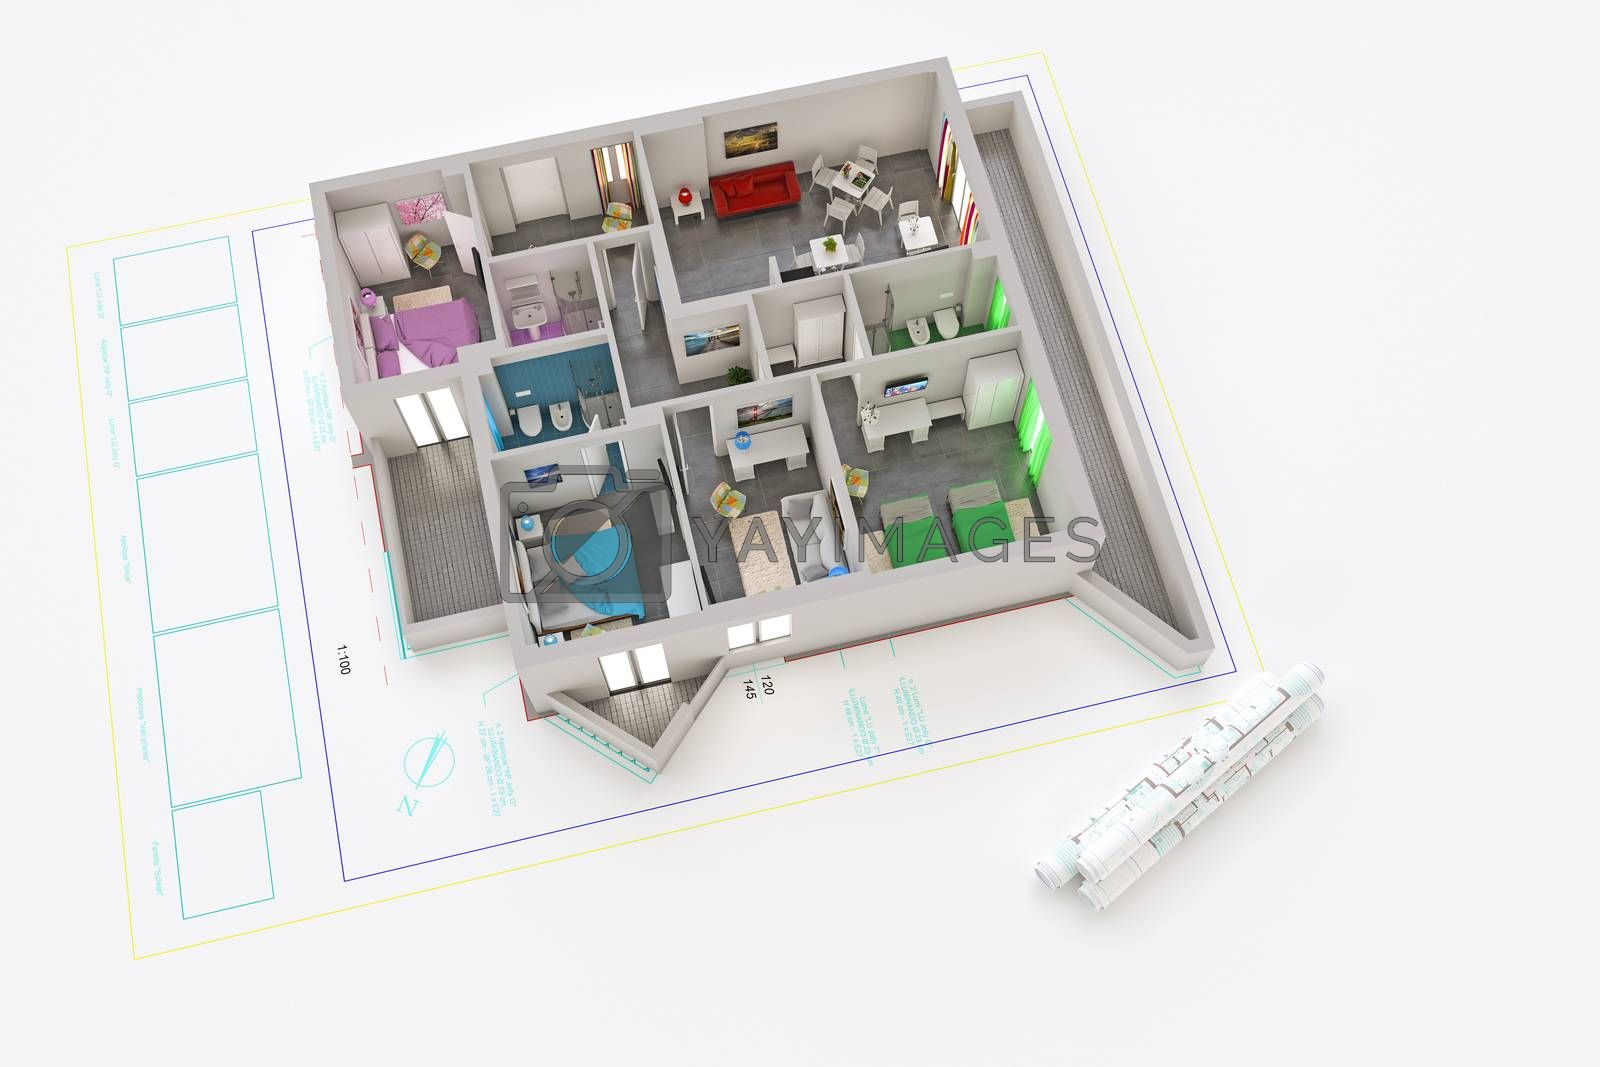 3d illustration of a modern and furnished apartment extruded from an architecture plan